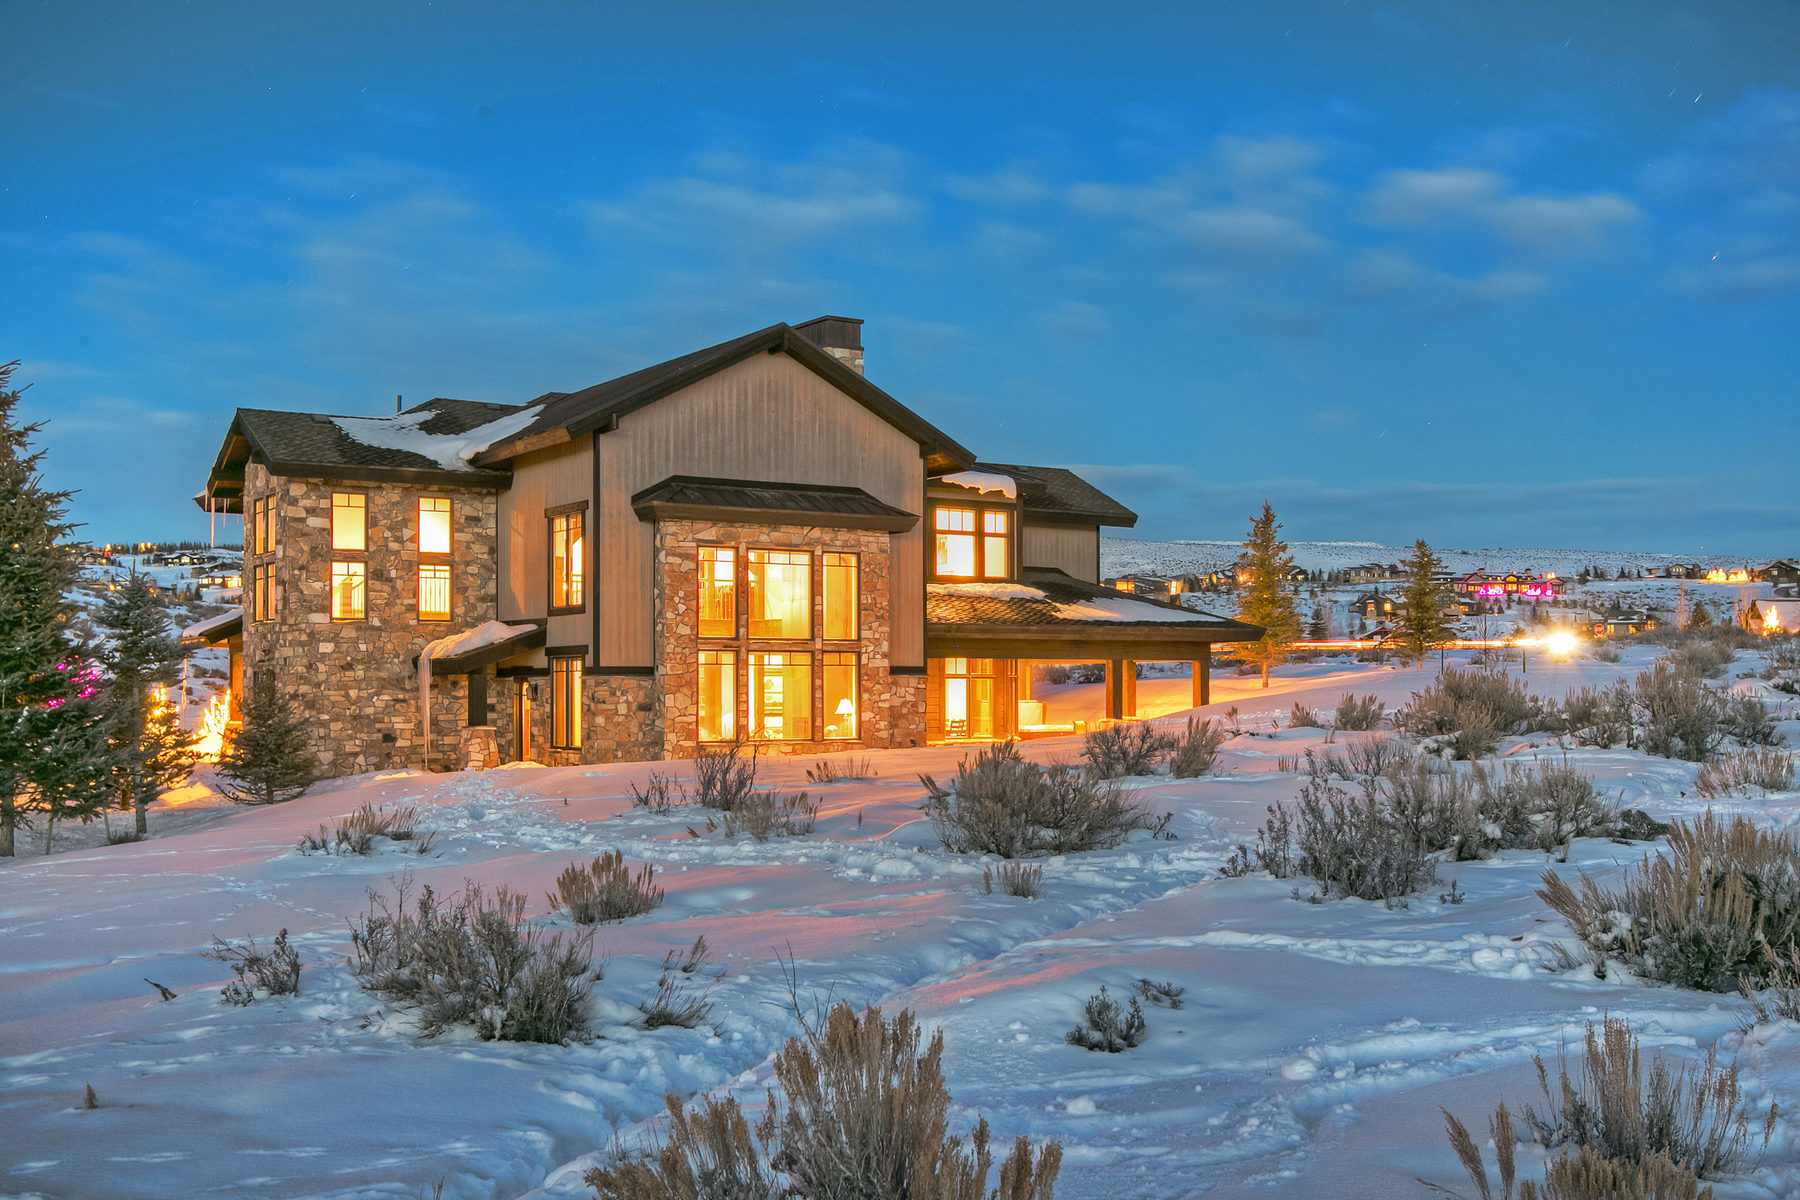 Single Family Home for Sale at The Most Exceptional Home Value in Promontory! 2345 Westview Trl Park City, Utah 84098 United States